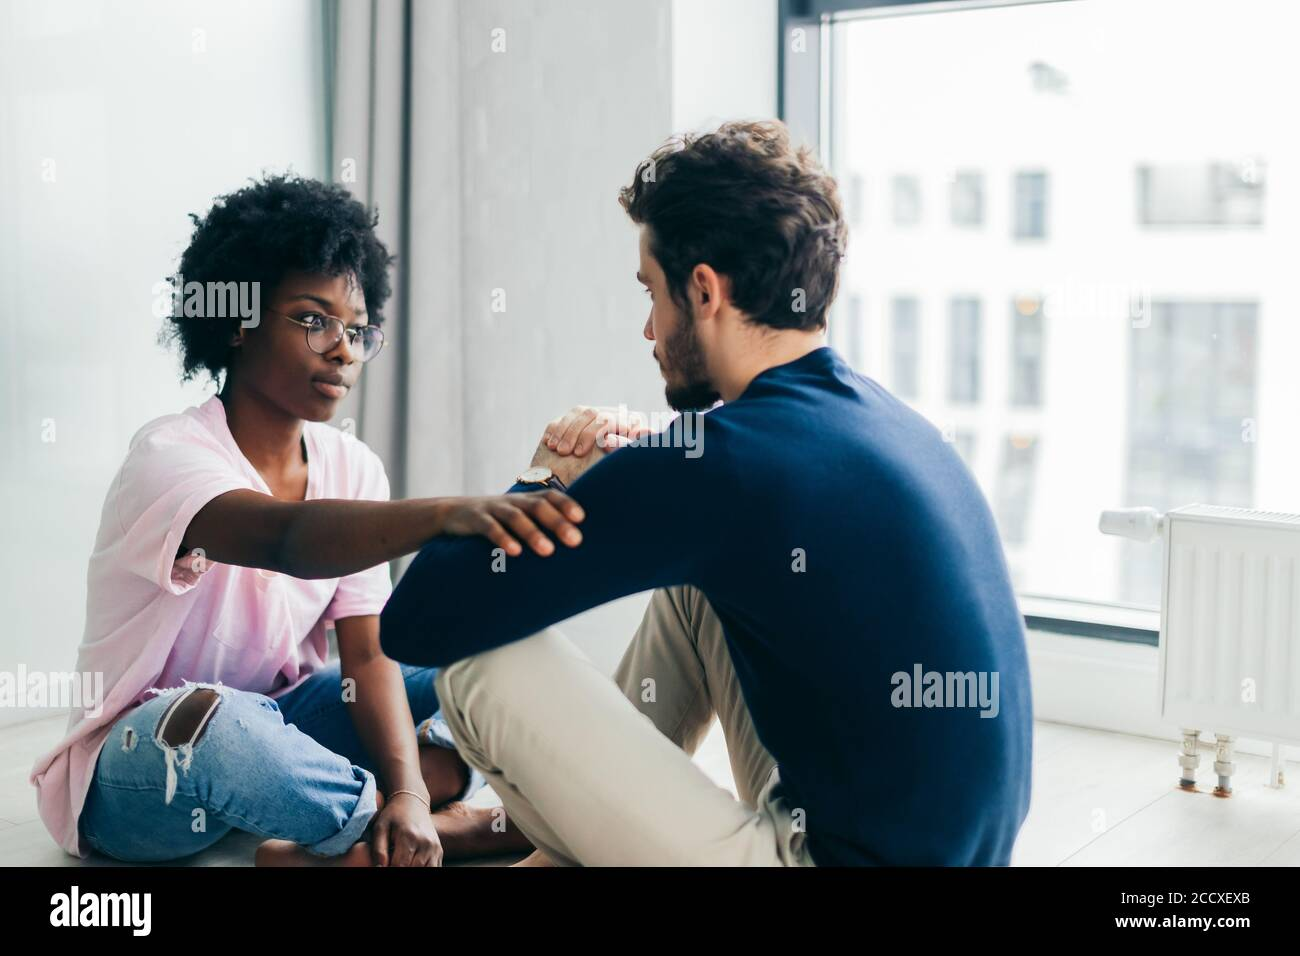 Young African woman and Caucasian man sitting near the window, staring at each other meditating together, free their minds from thoughts and worries. Stock Photo